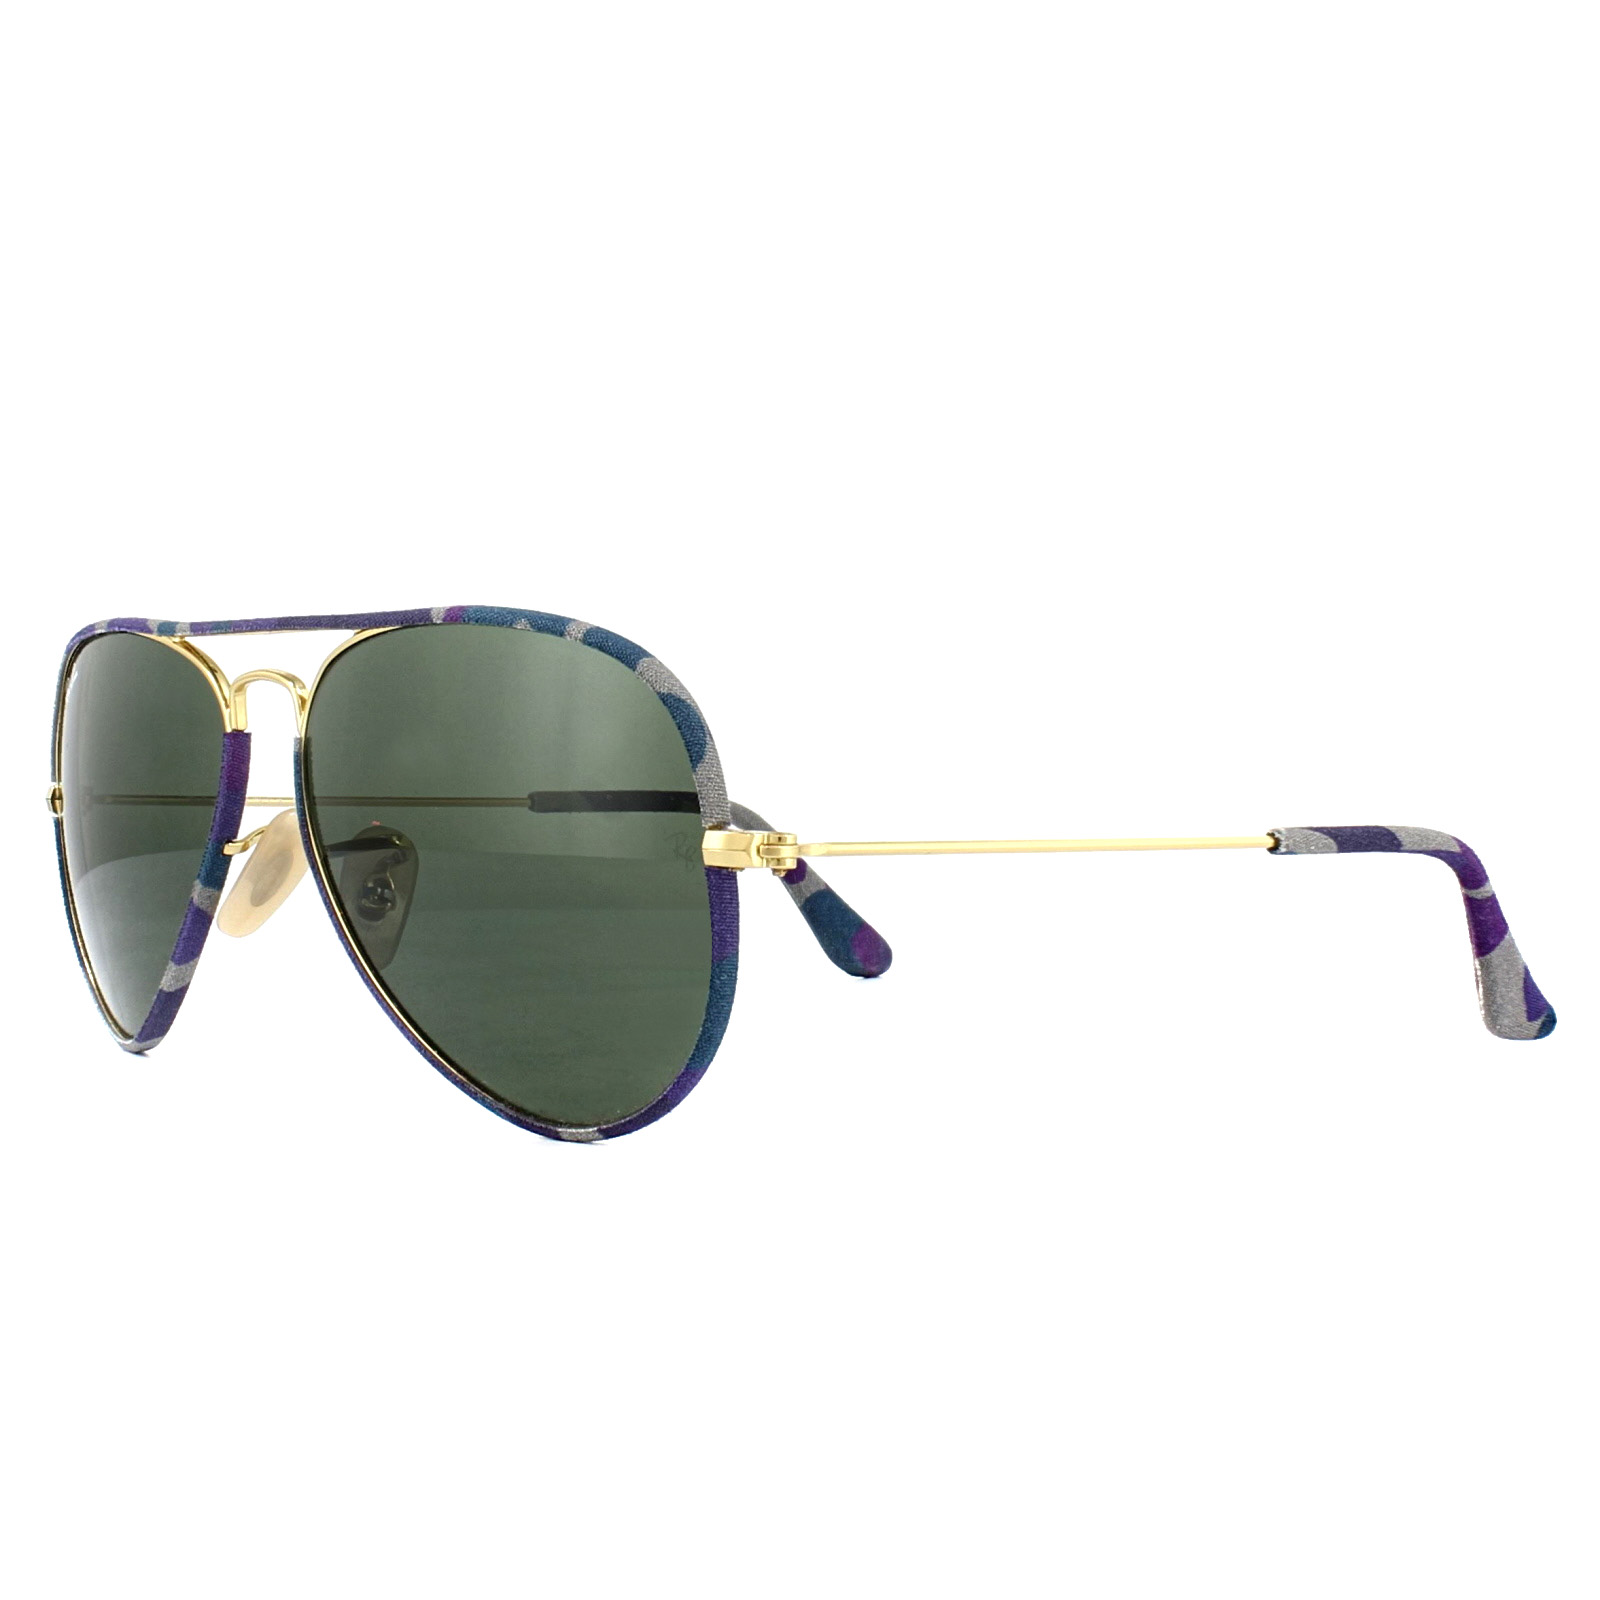 27e35d665c Sentinel Ray-Ban Sunglasses Aviator Full Colour 3025JM 172 Multi-Coloured  Gold Green 55mm